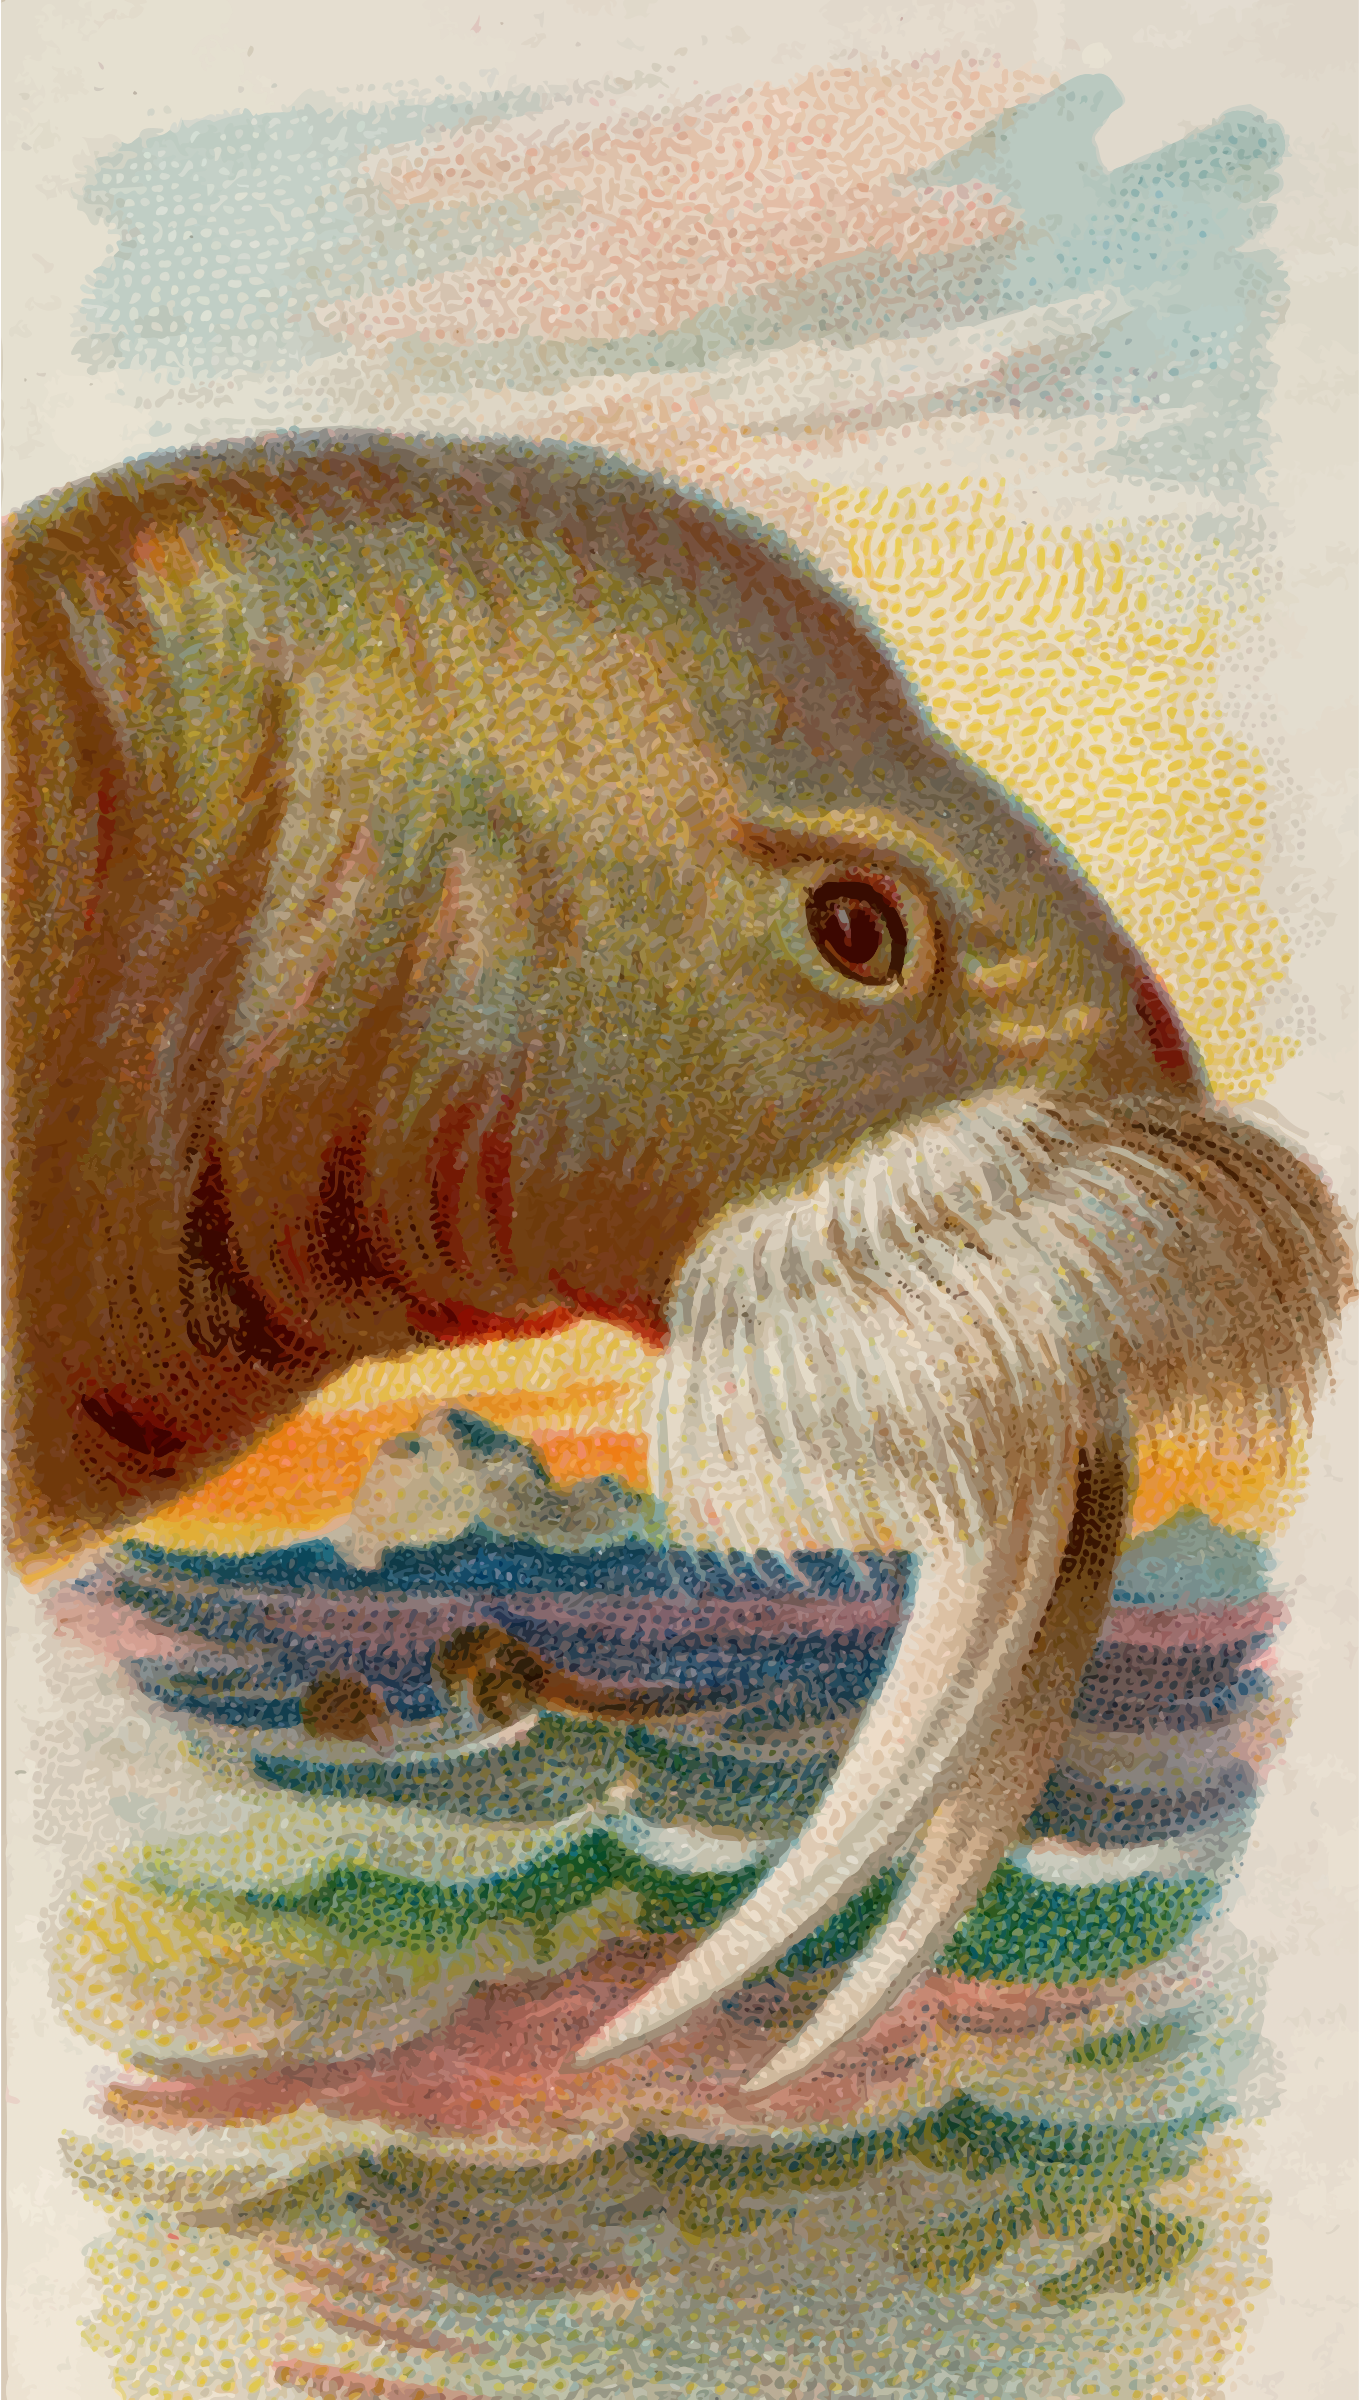 Cigarette card - Walrus by Firkin